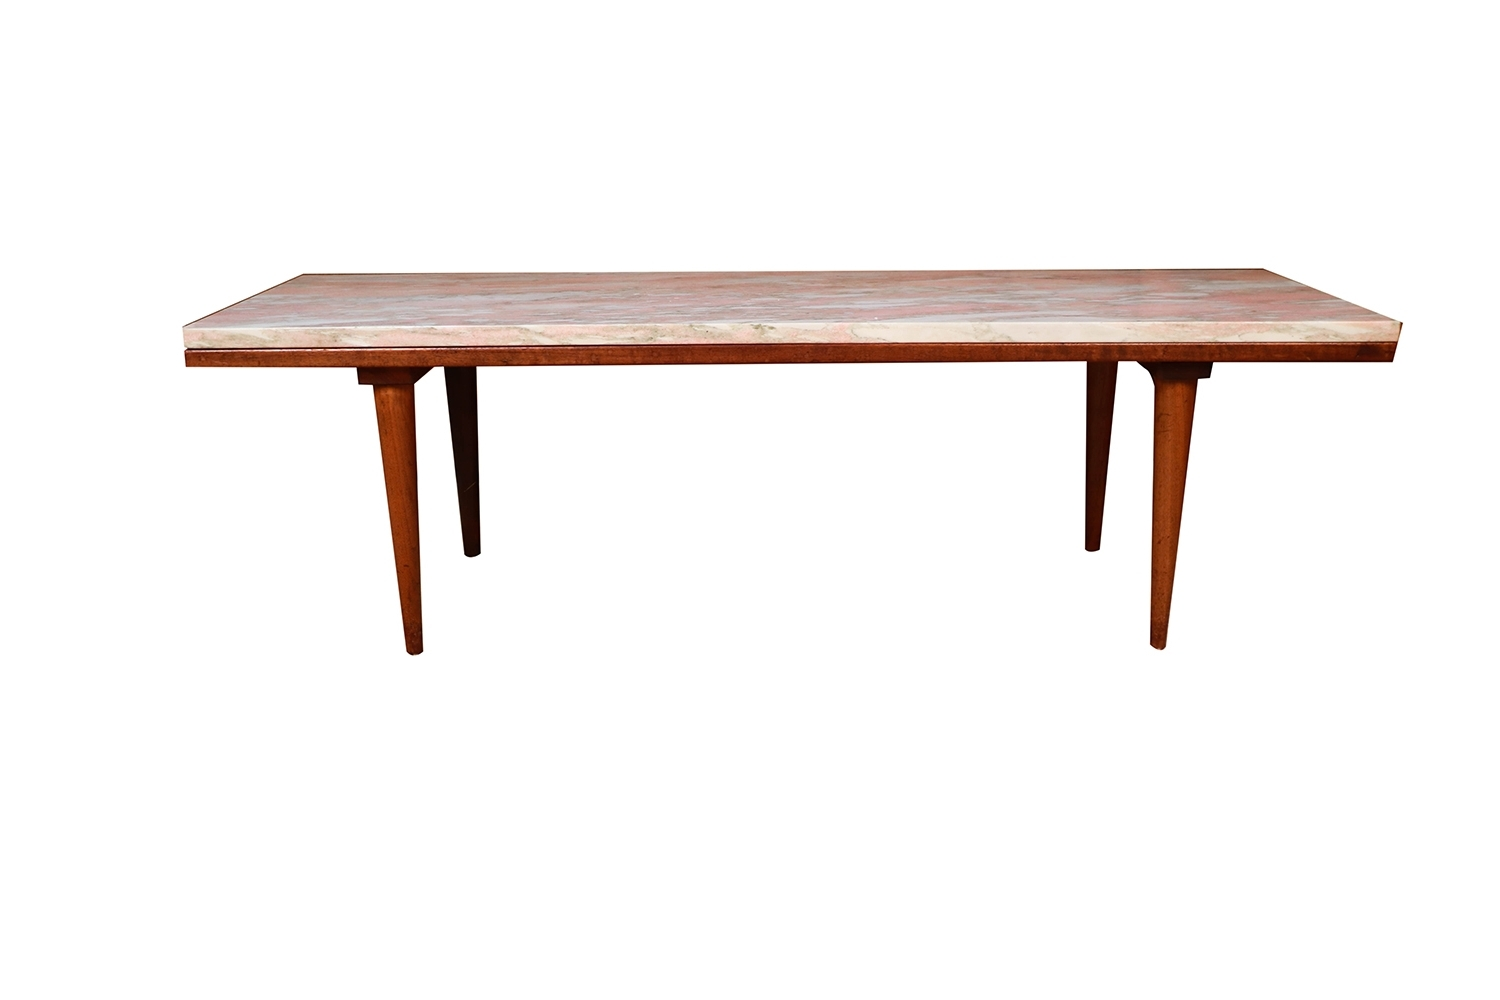 Mid Century Modern Marble Top Slat Bench Coffee Table – Intended For Widely Used Mid Century Modern Marble Coffee Tables (View 10 of 20)